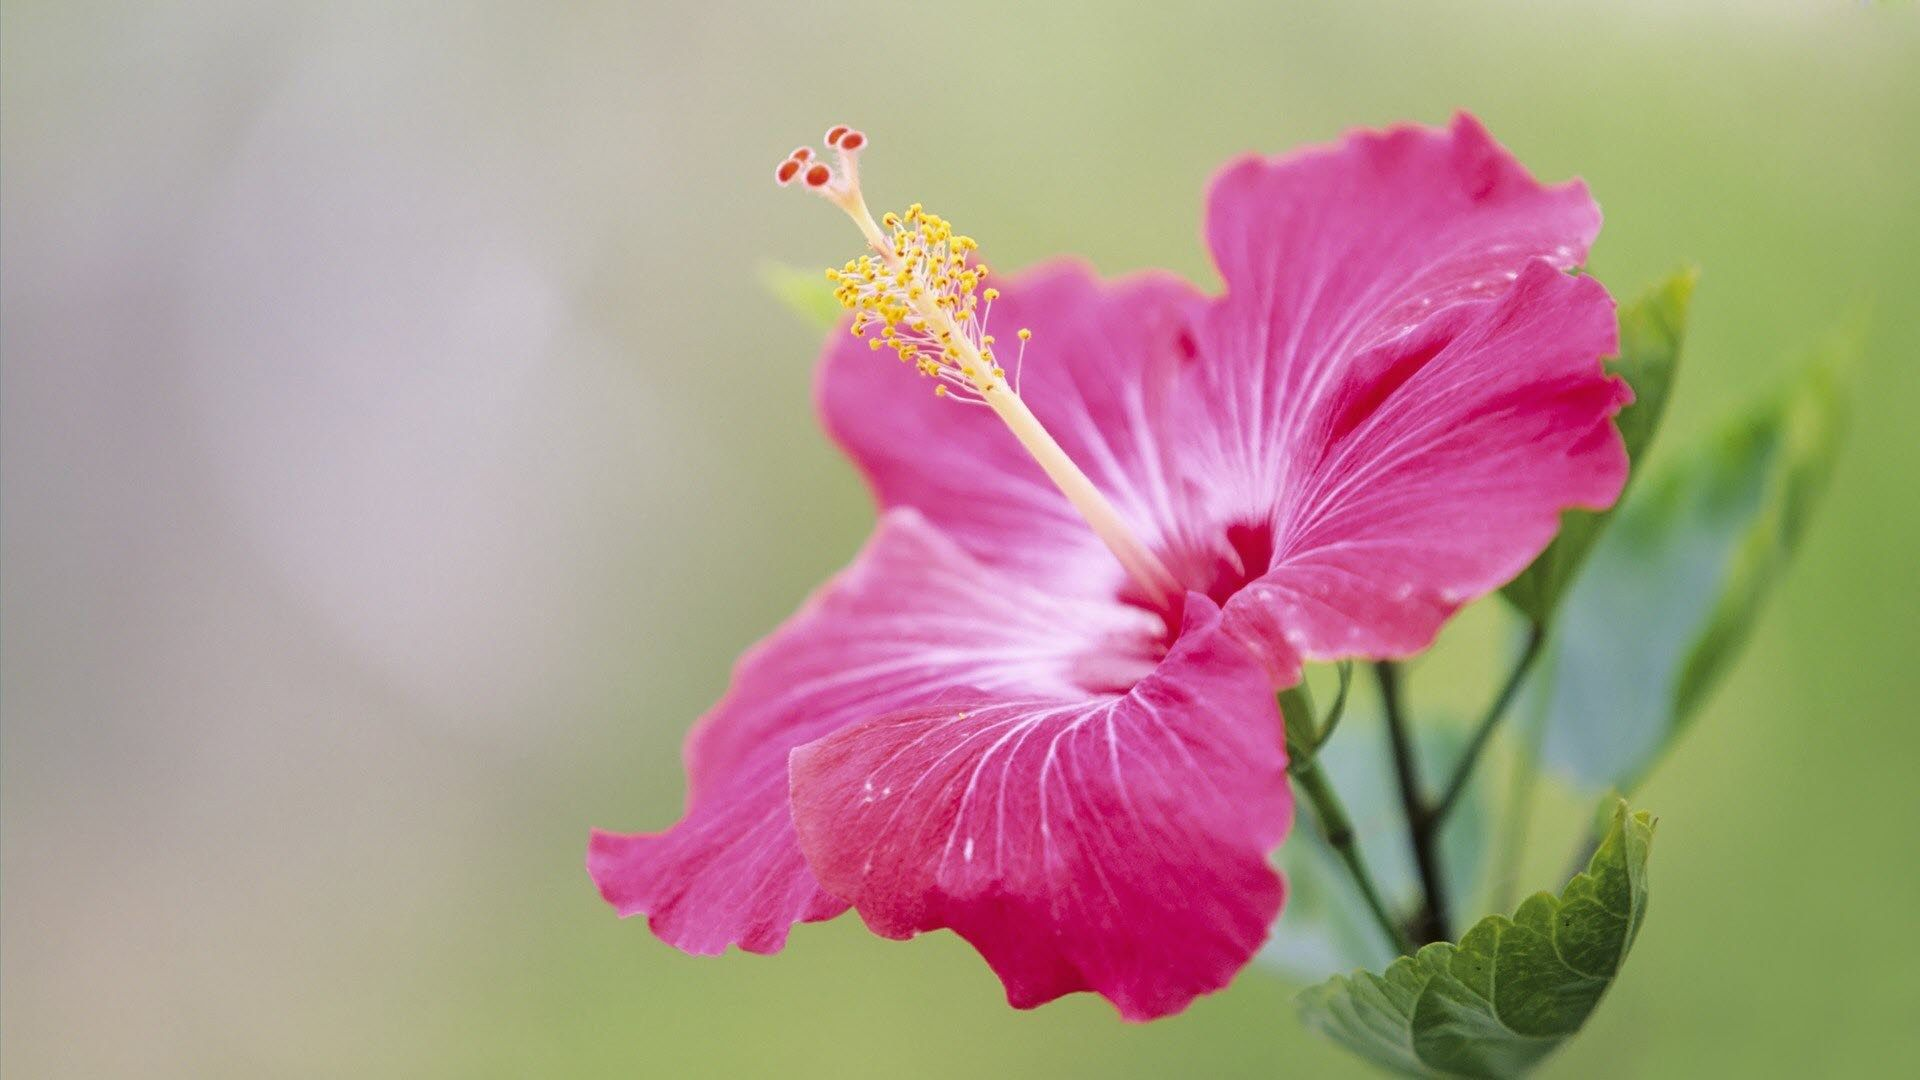 Hd Wallpaper Flower Download Hibiscus Plant Hibiscus Flower Meaning Pink Flowers Wallpaper